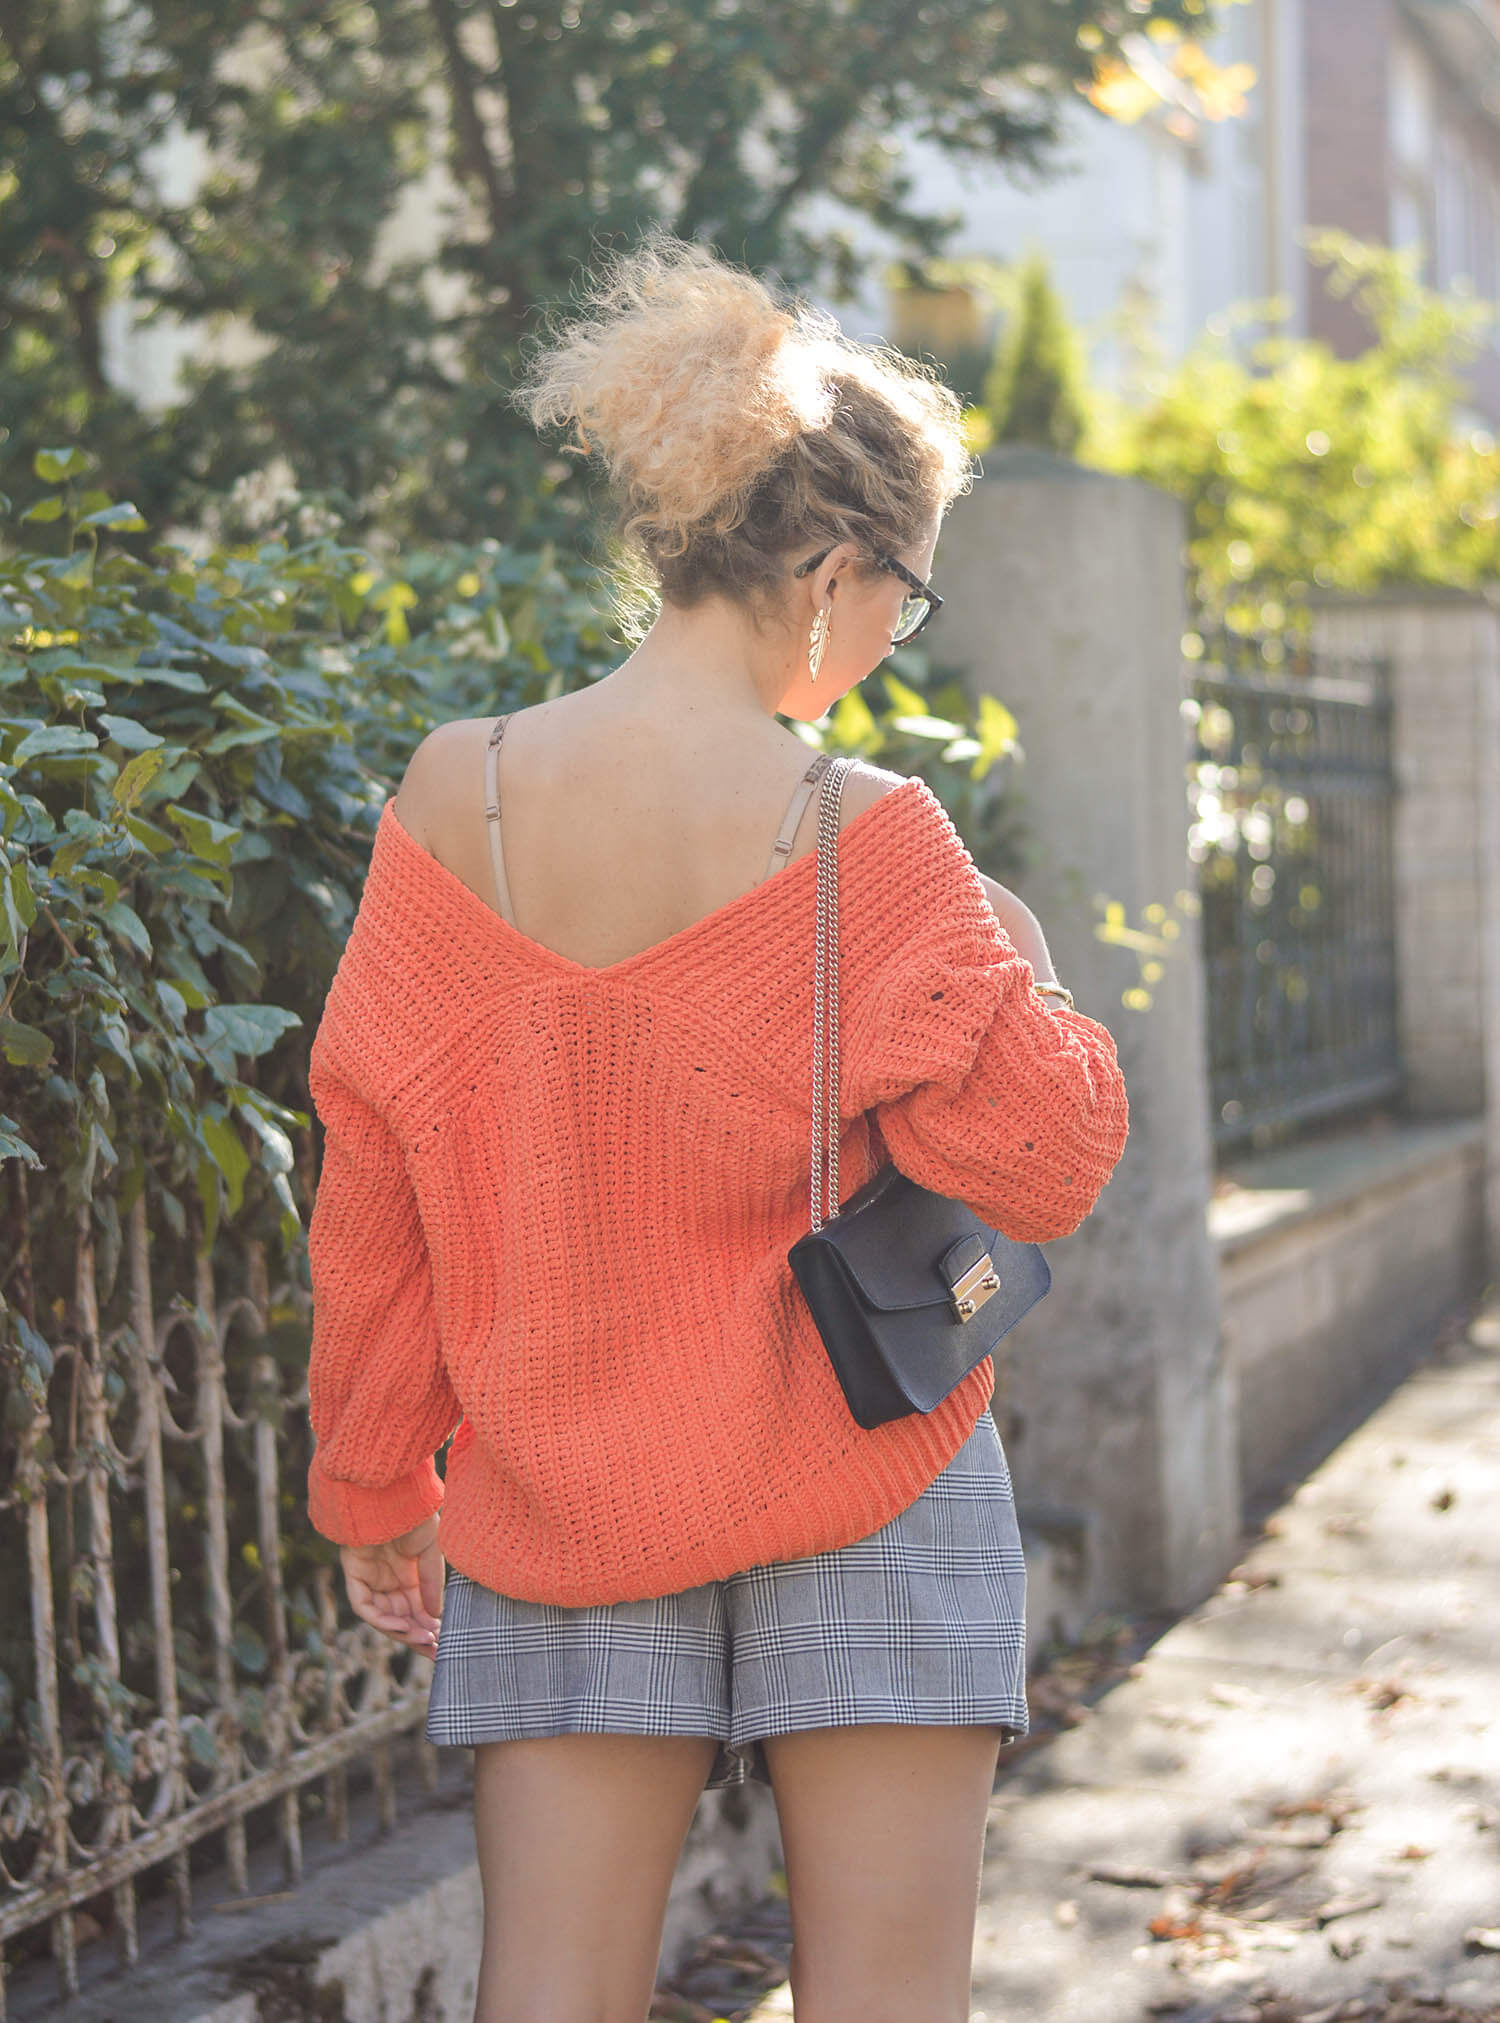 Pumpkin-Colored-Sweater-Monstera-Earrings-and-Shorts-Indian-Summer-Germany-Kationette-Fashionblogger